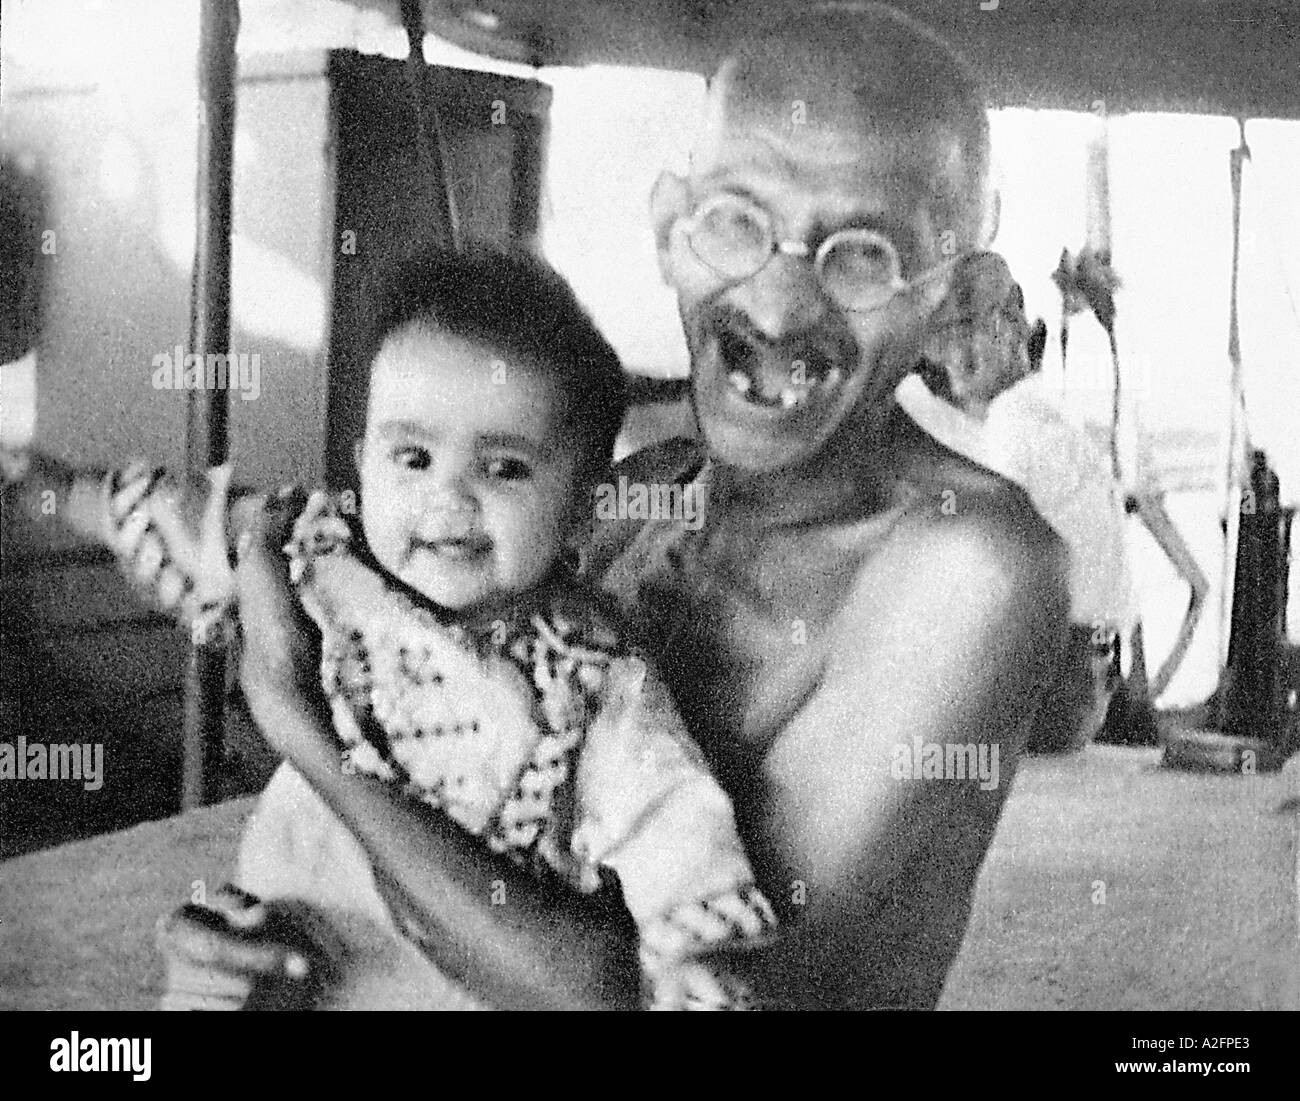 Mahatma Gandhi laughing playing with a child during his voyage on SS Rajputana to England September 1931 - Stock Image